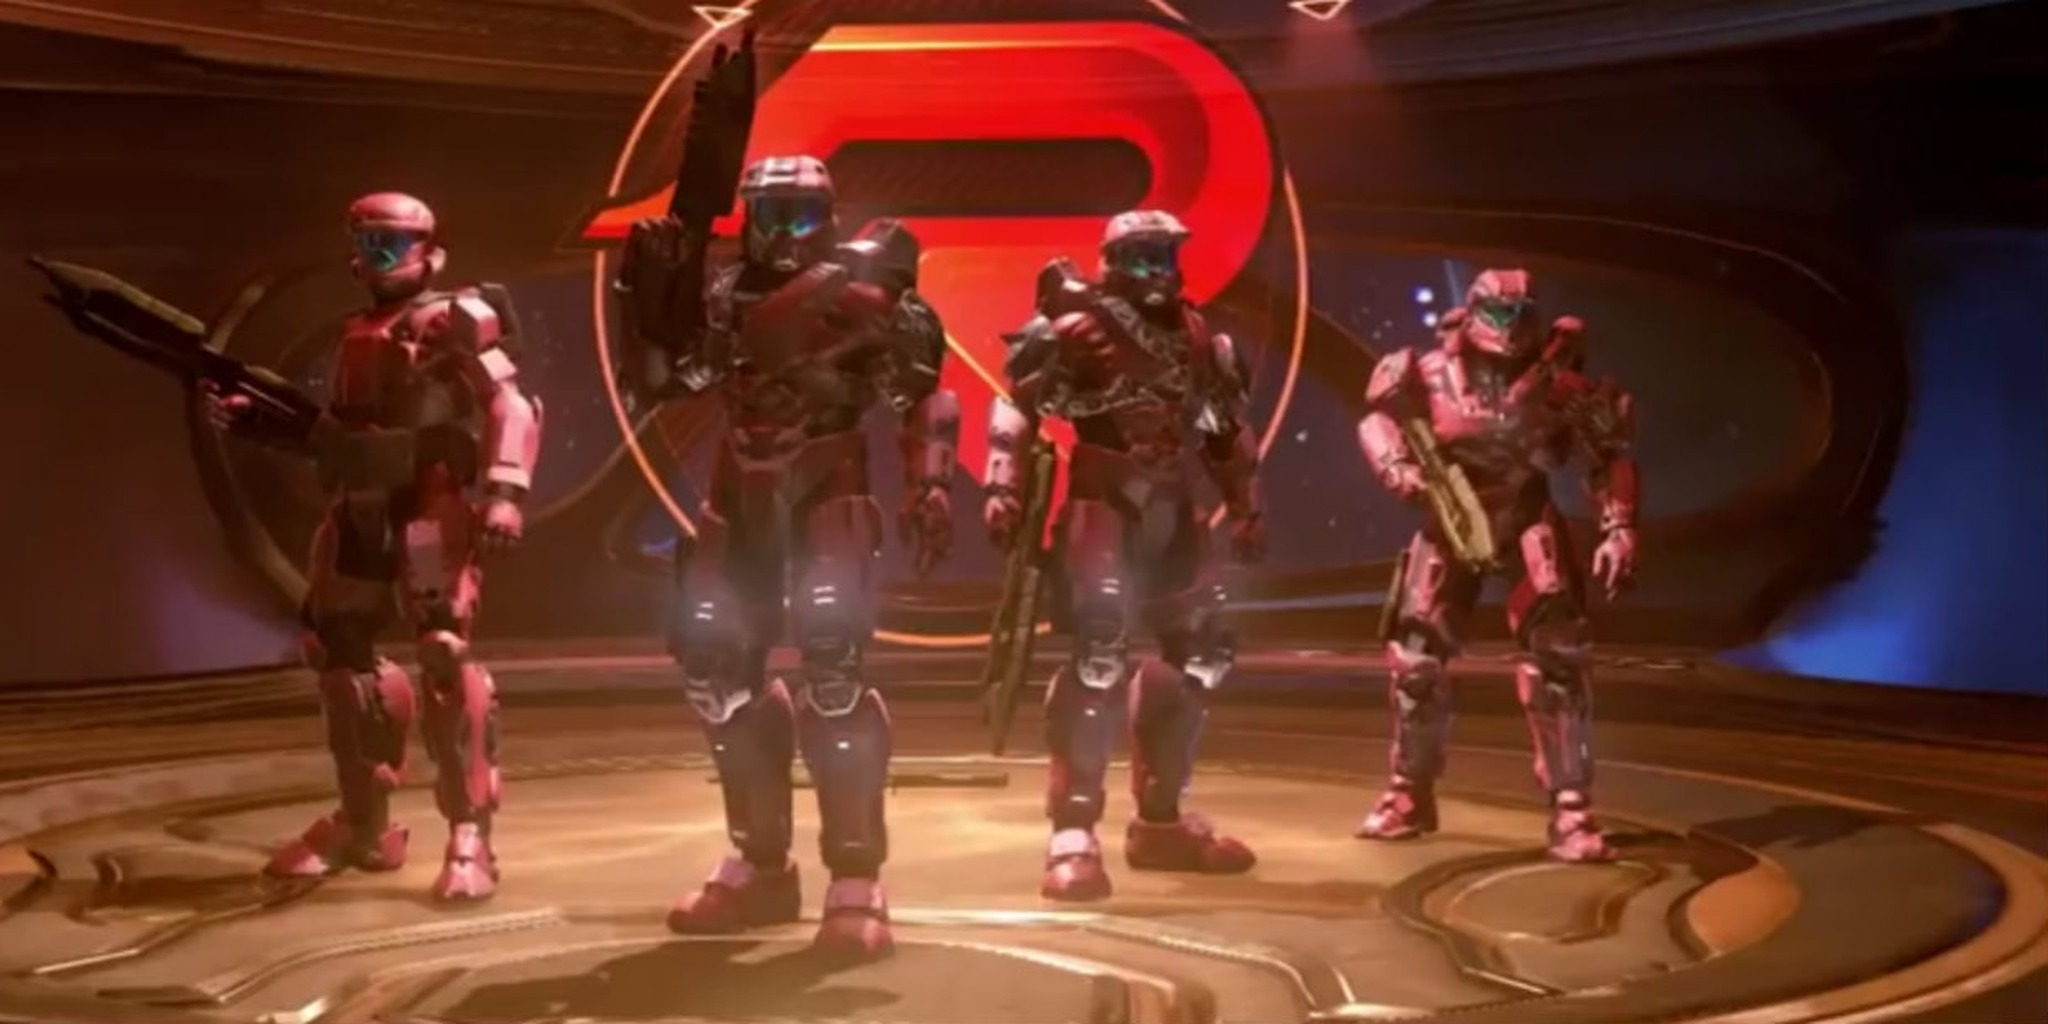 Halo 5 multiplayer is a return to FPS roots, and that's a good thing